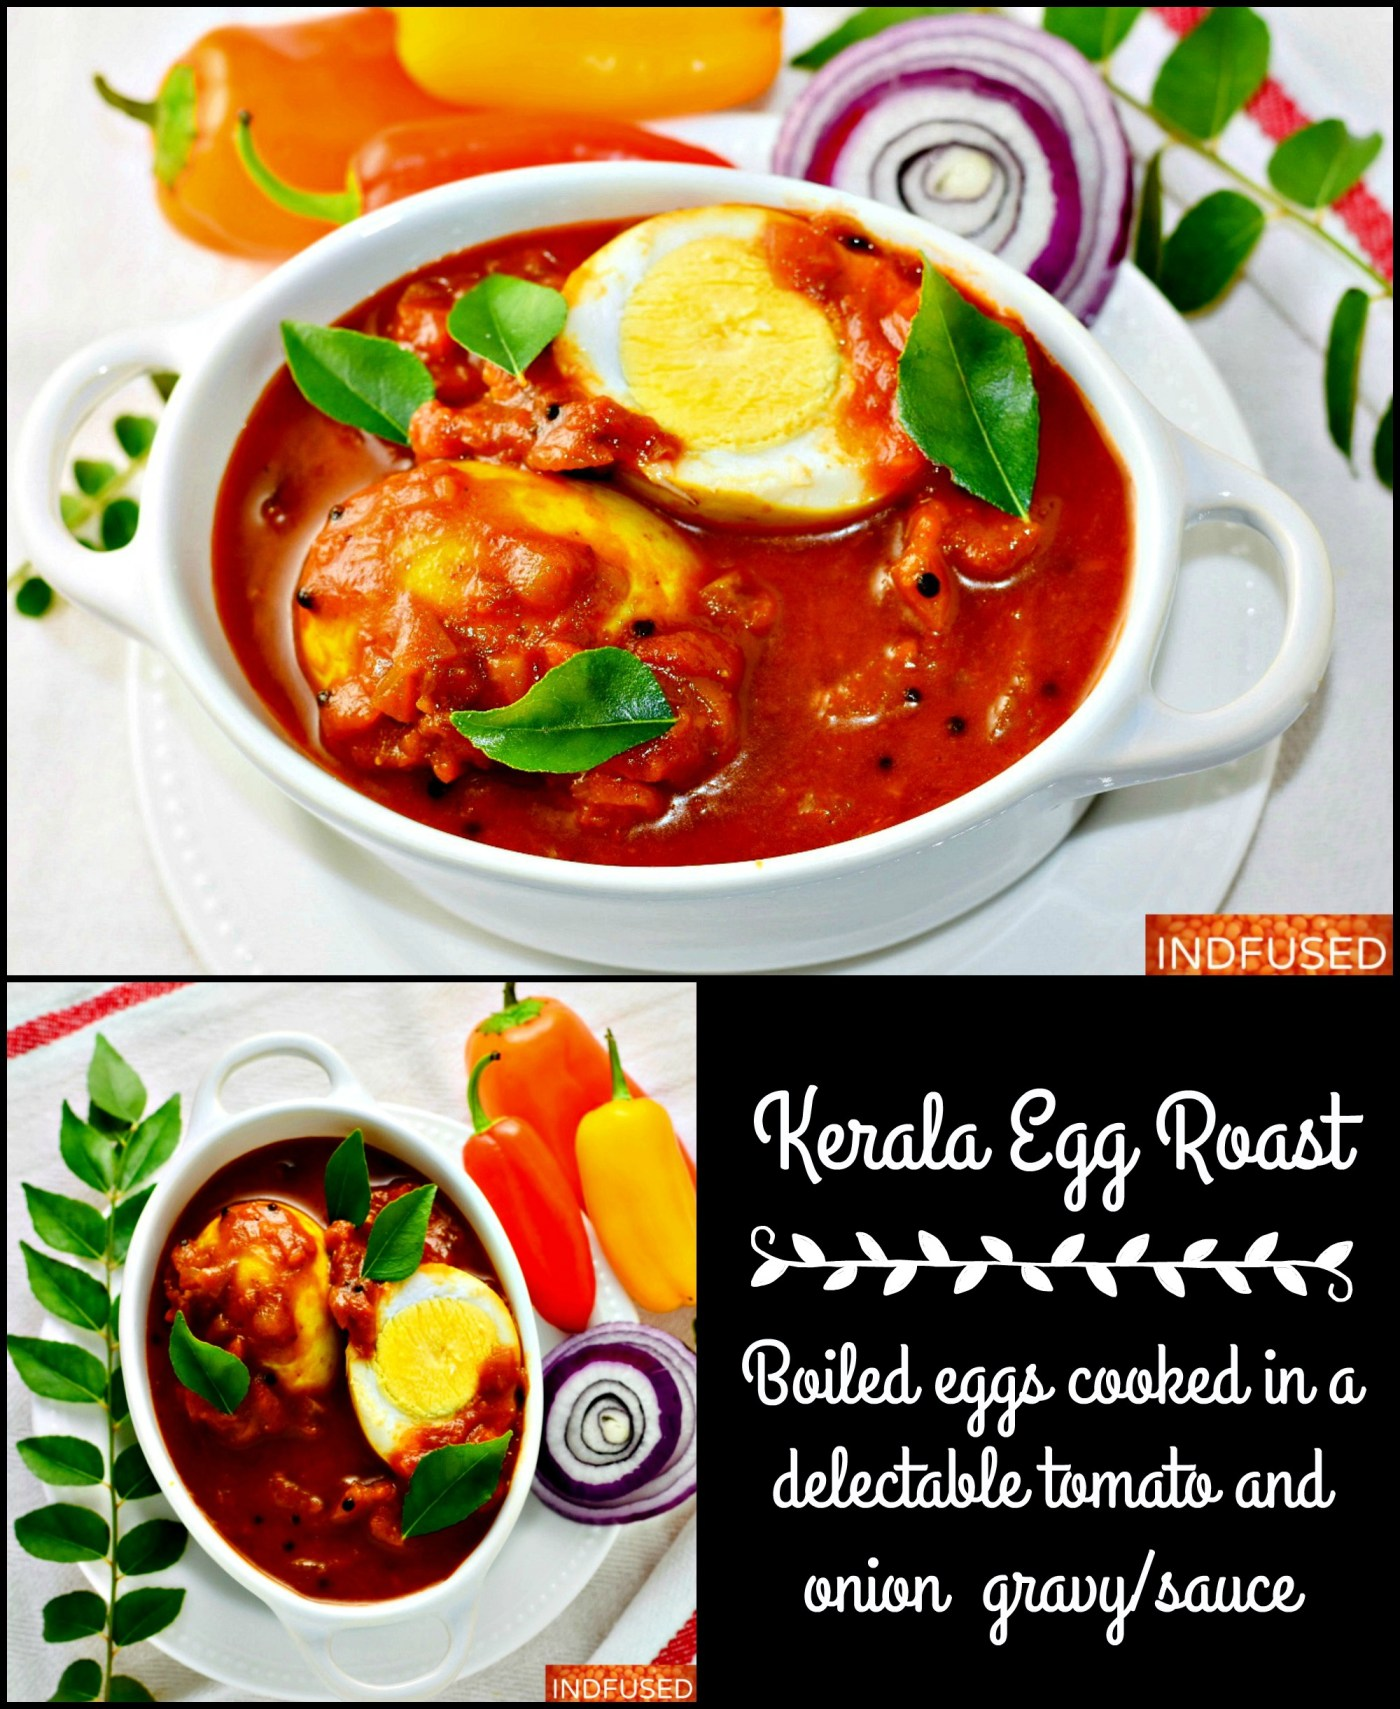 Kerala egg roast is an iconic dish with boiled eggs in a delectable curry